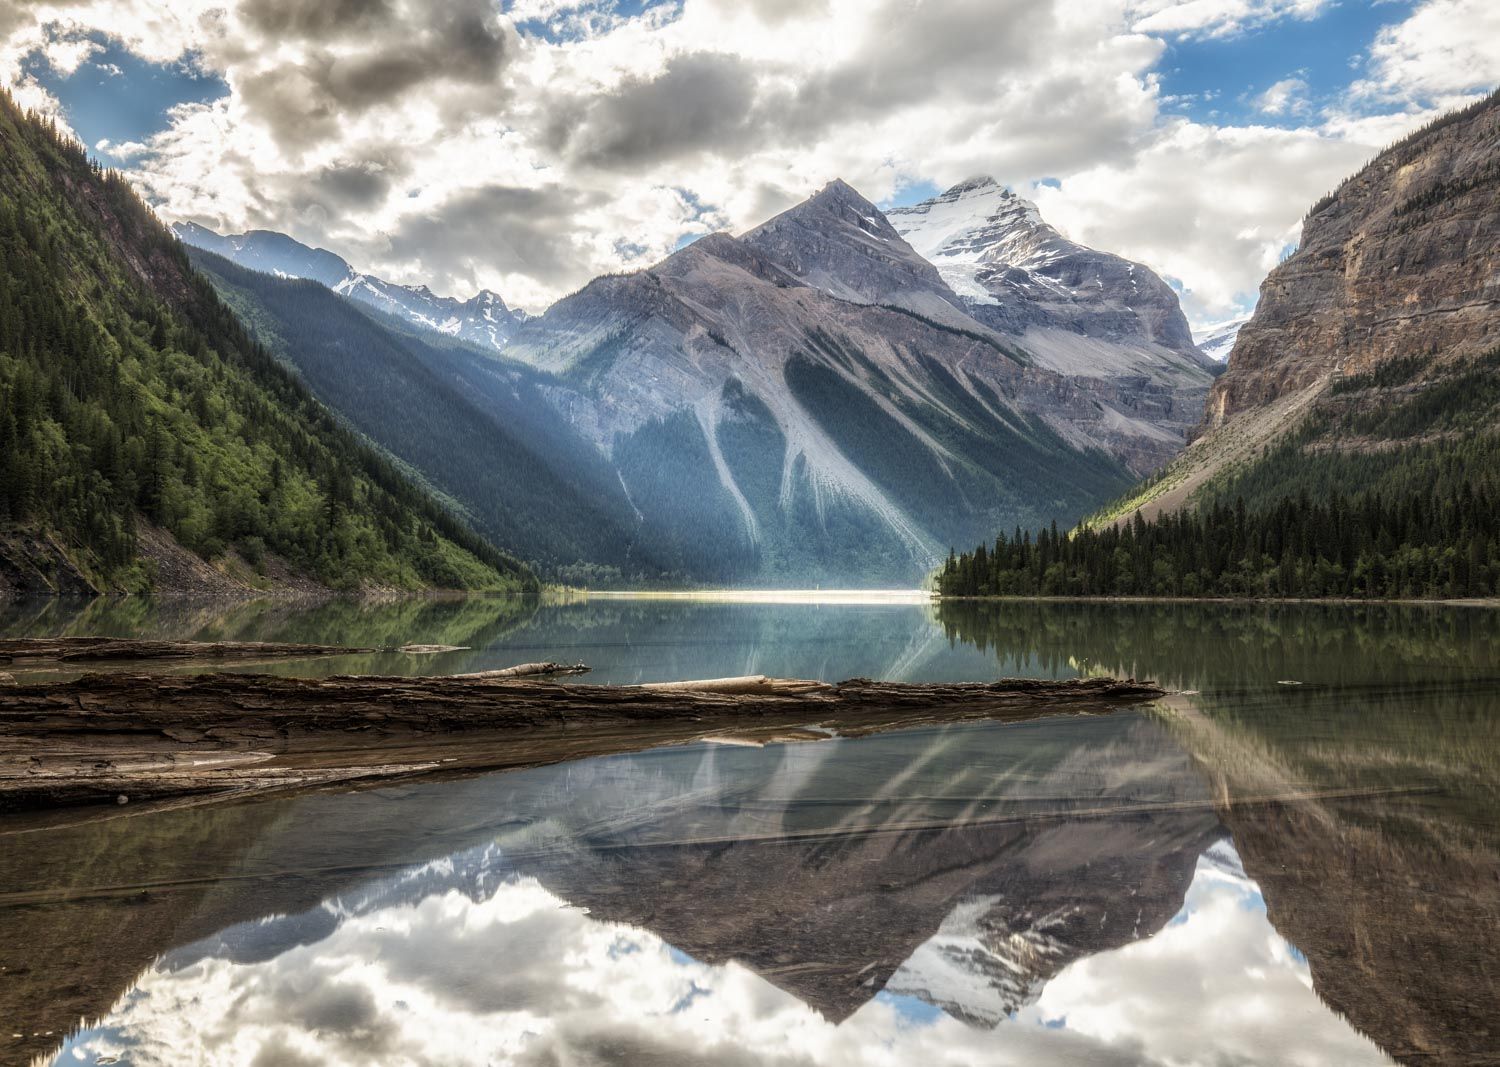 Kinney Lake at Mount Robson, Canada.